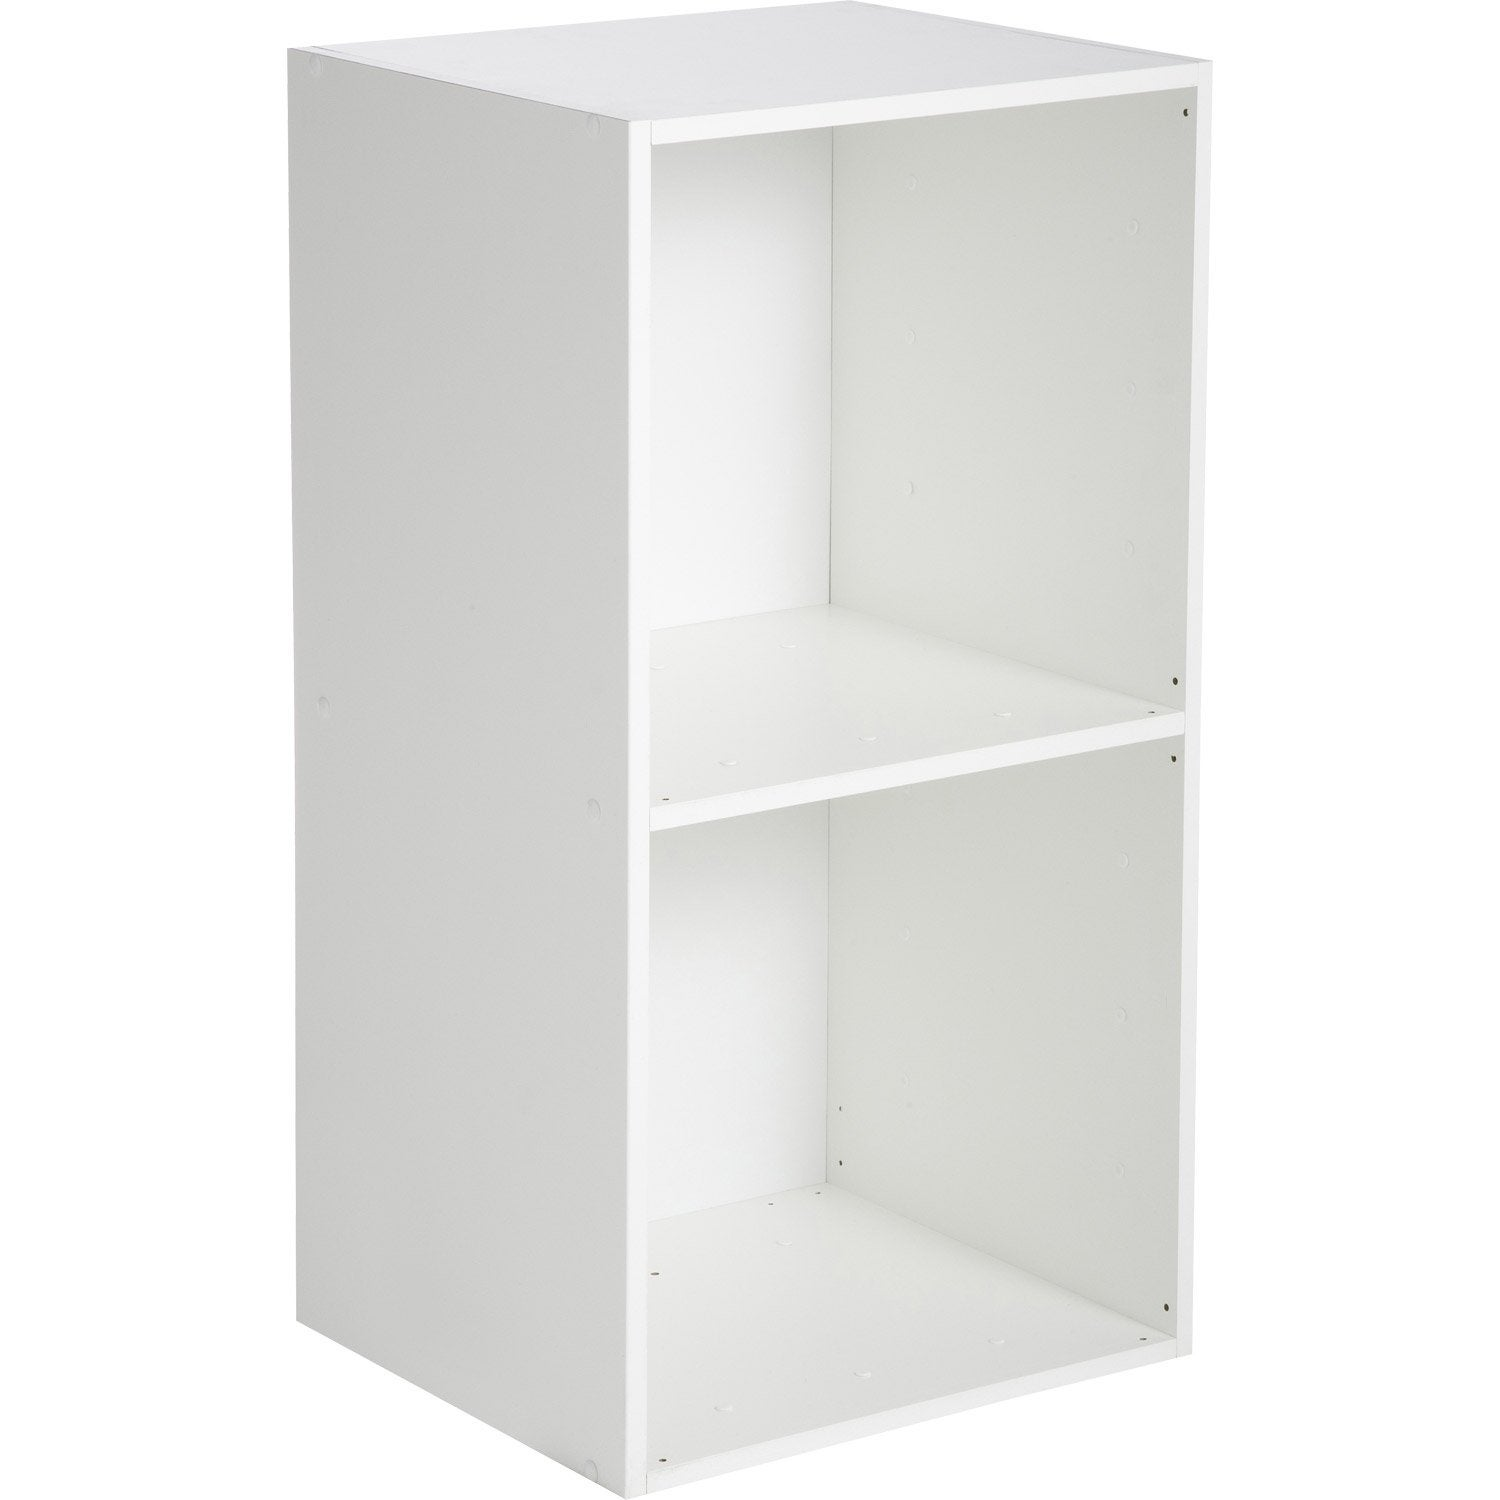 Etag re 2 cases multikaz blanc x x cm leroy merlin - Etagere murale casier ...